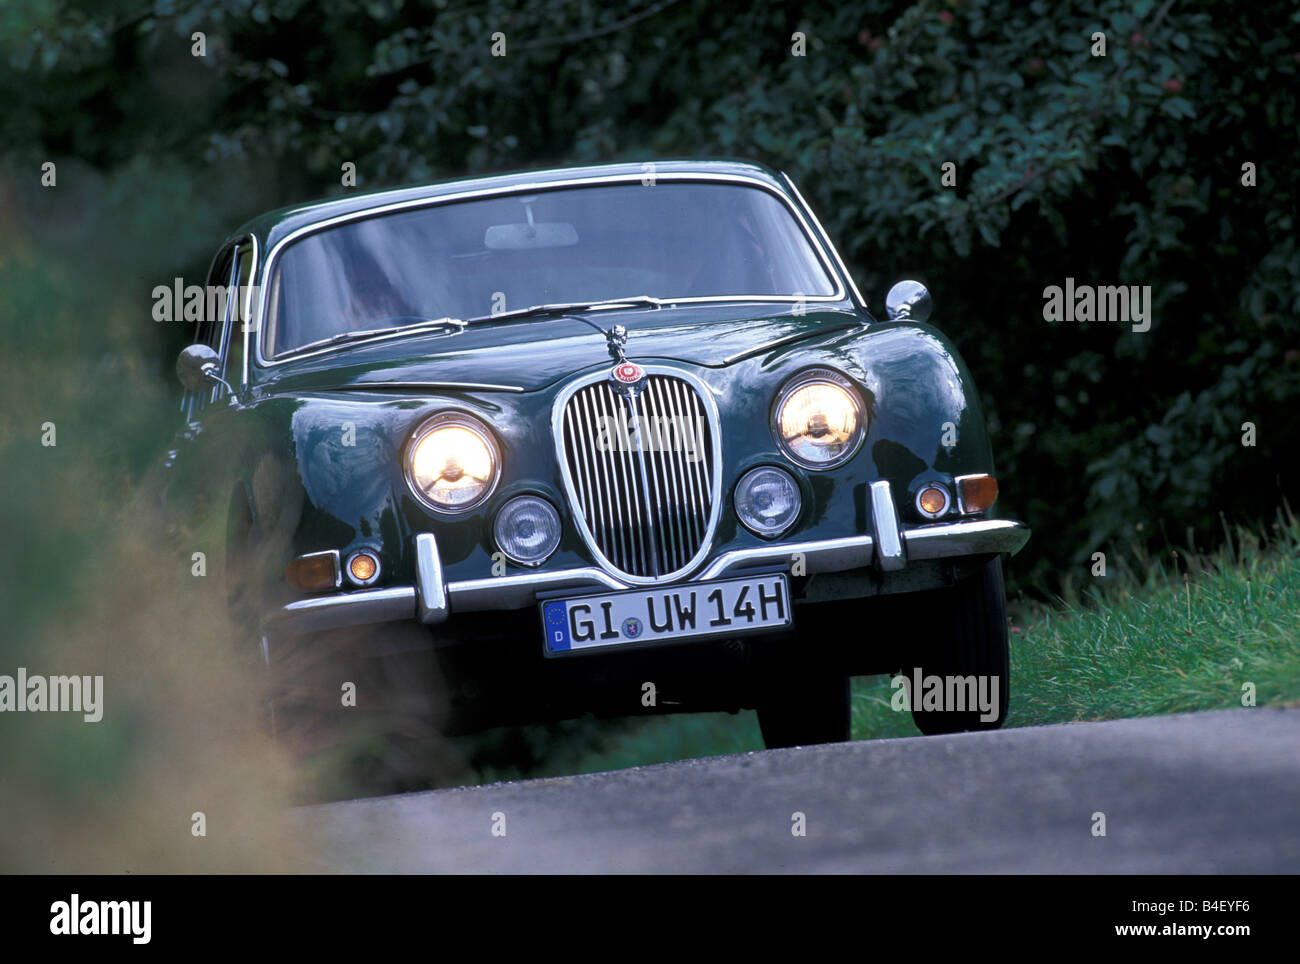 Car Jaguar S Type Vintage Car Sixties Dark Green